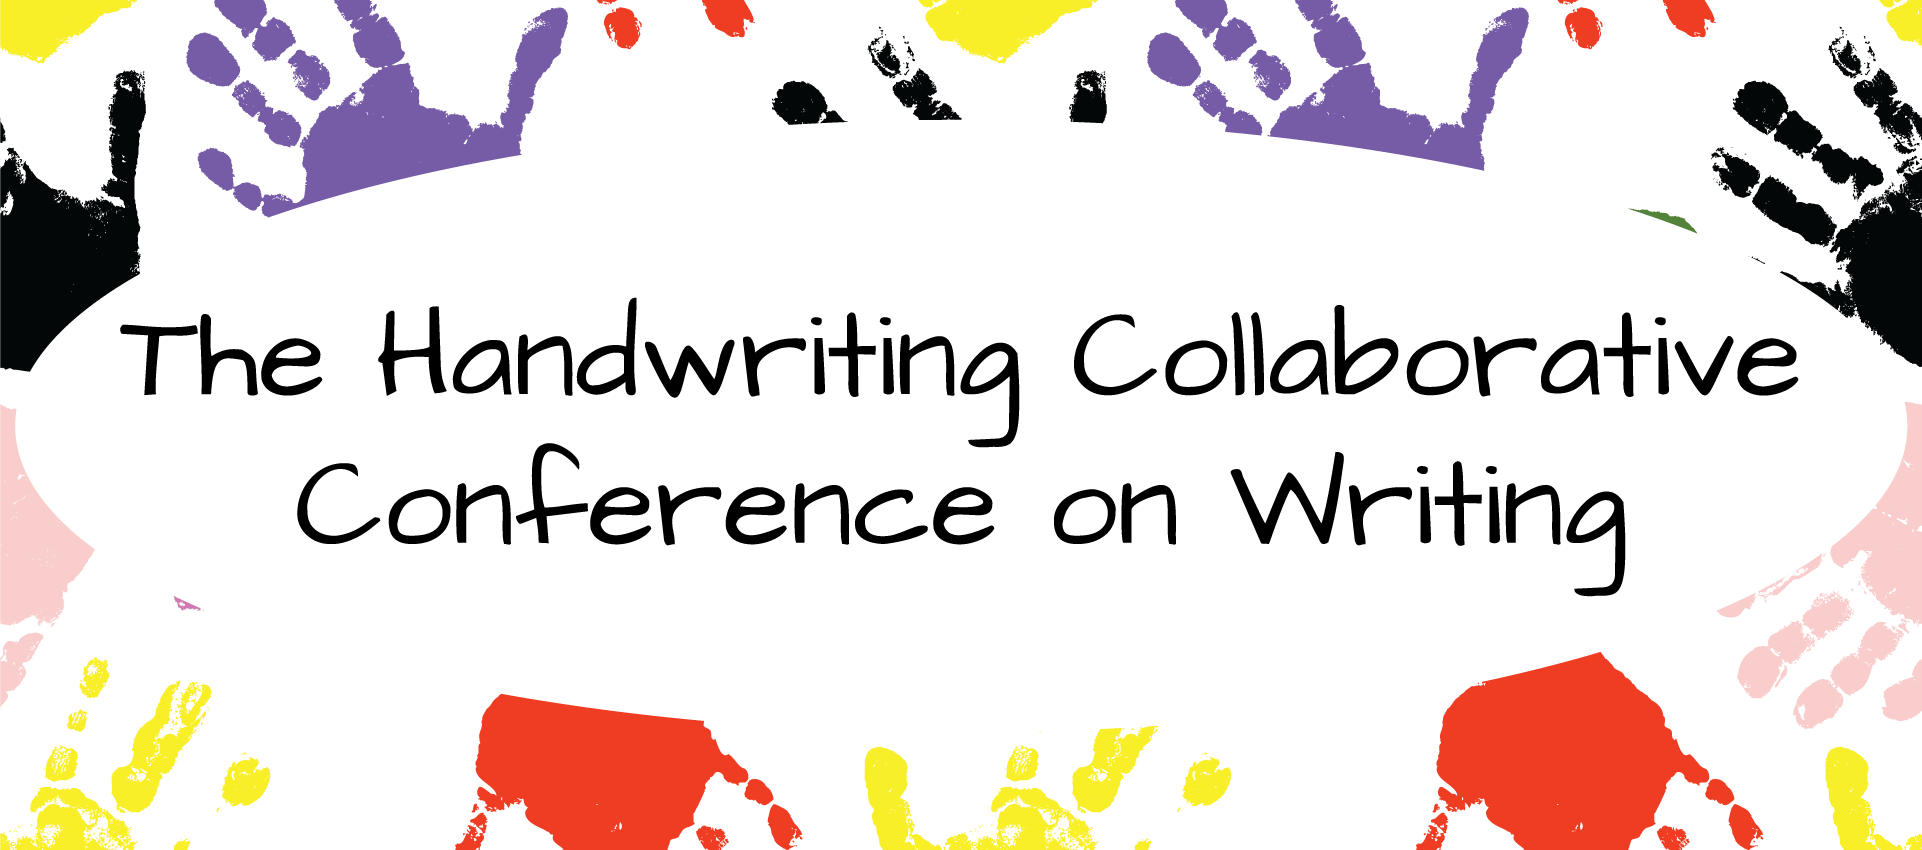 Handwriting Collaborative Conference